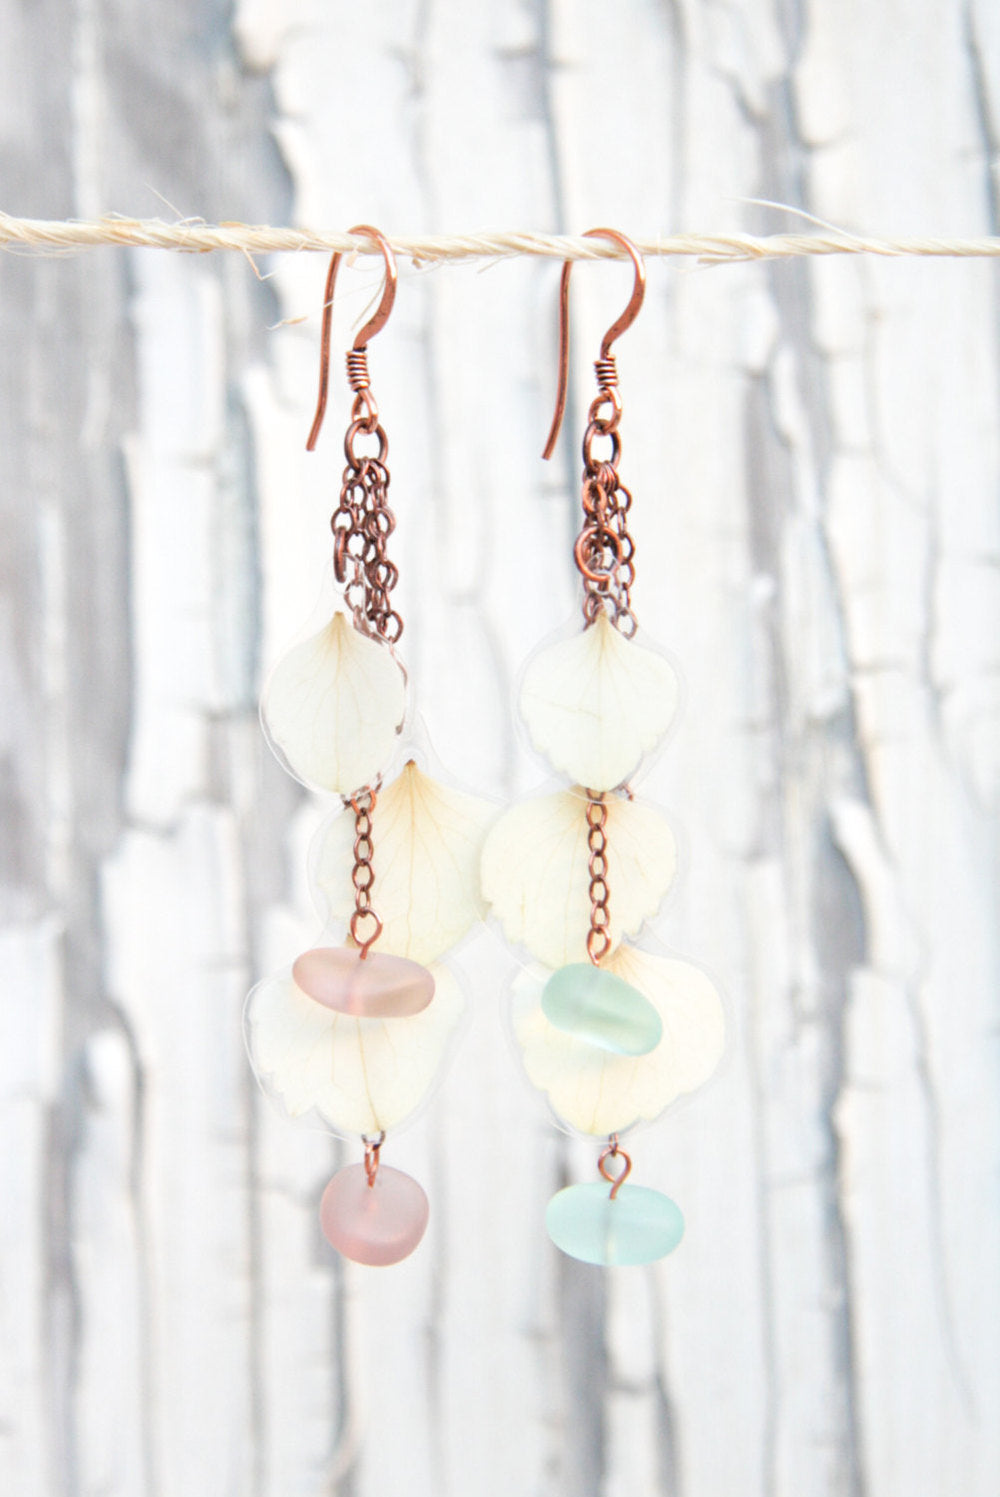 White Hydrangea Pressed Flower Earrings with Green OR Purple Sea Glass Beads